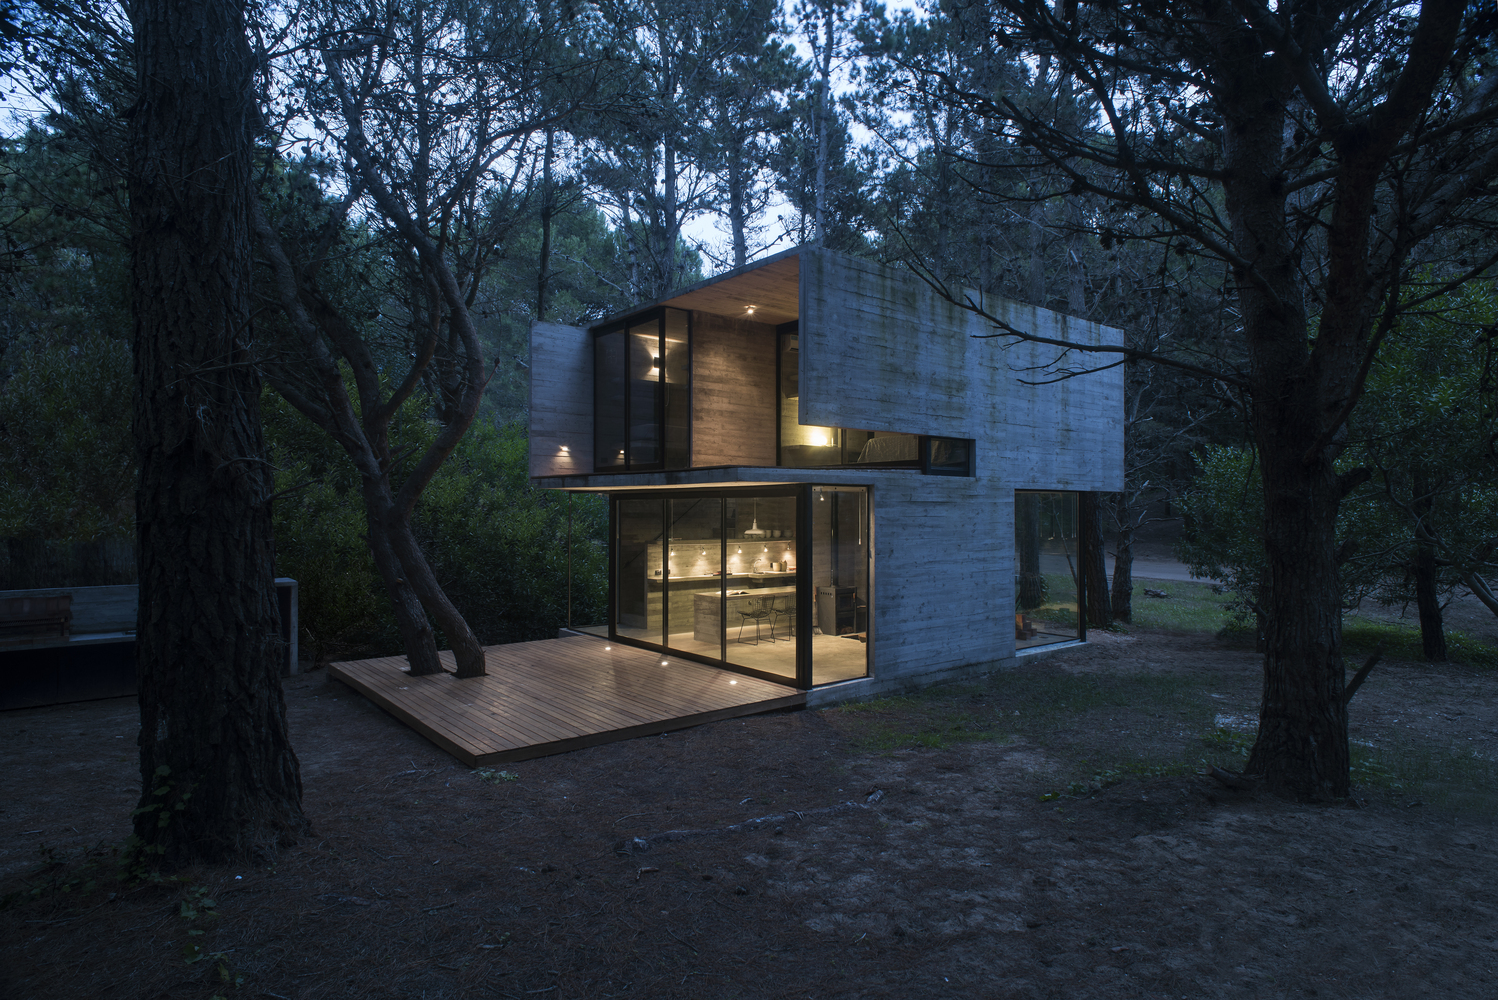 H3 house by luciano kruk in mar azul argentina for Forest house